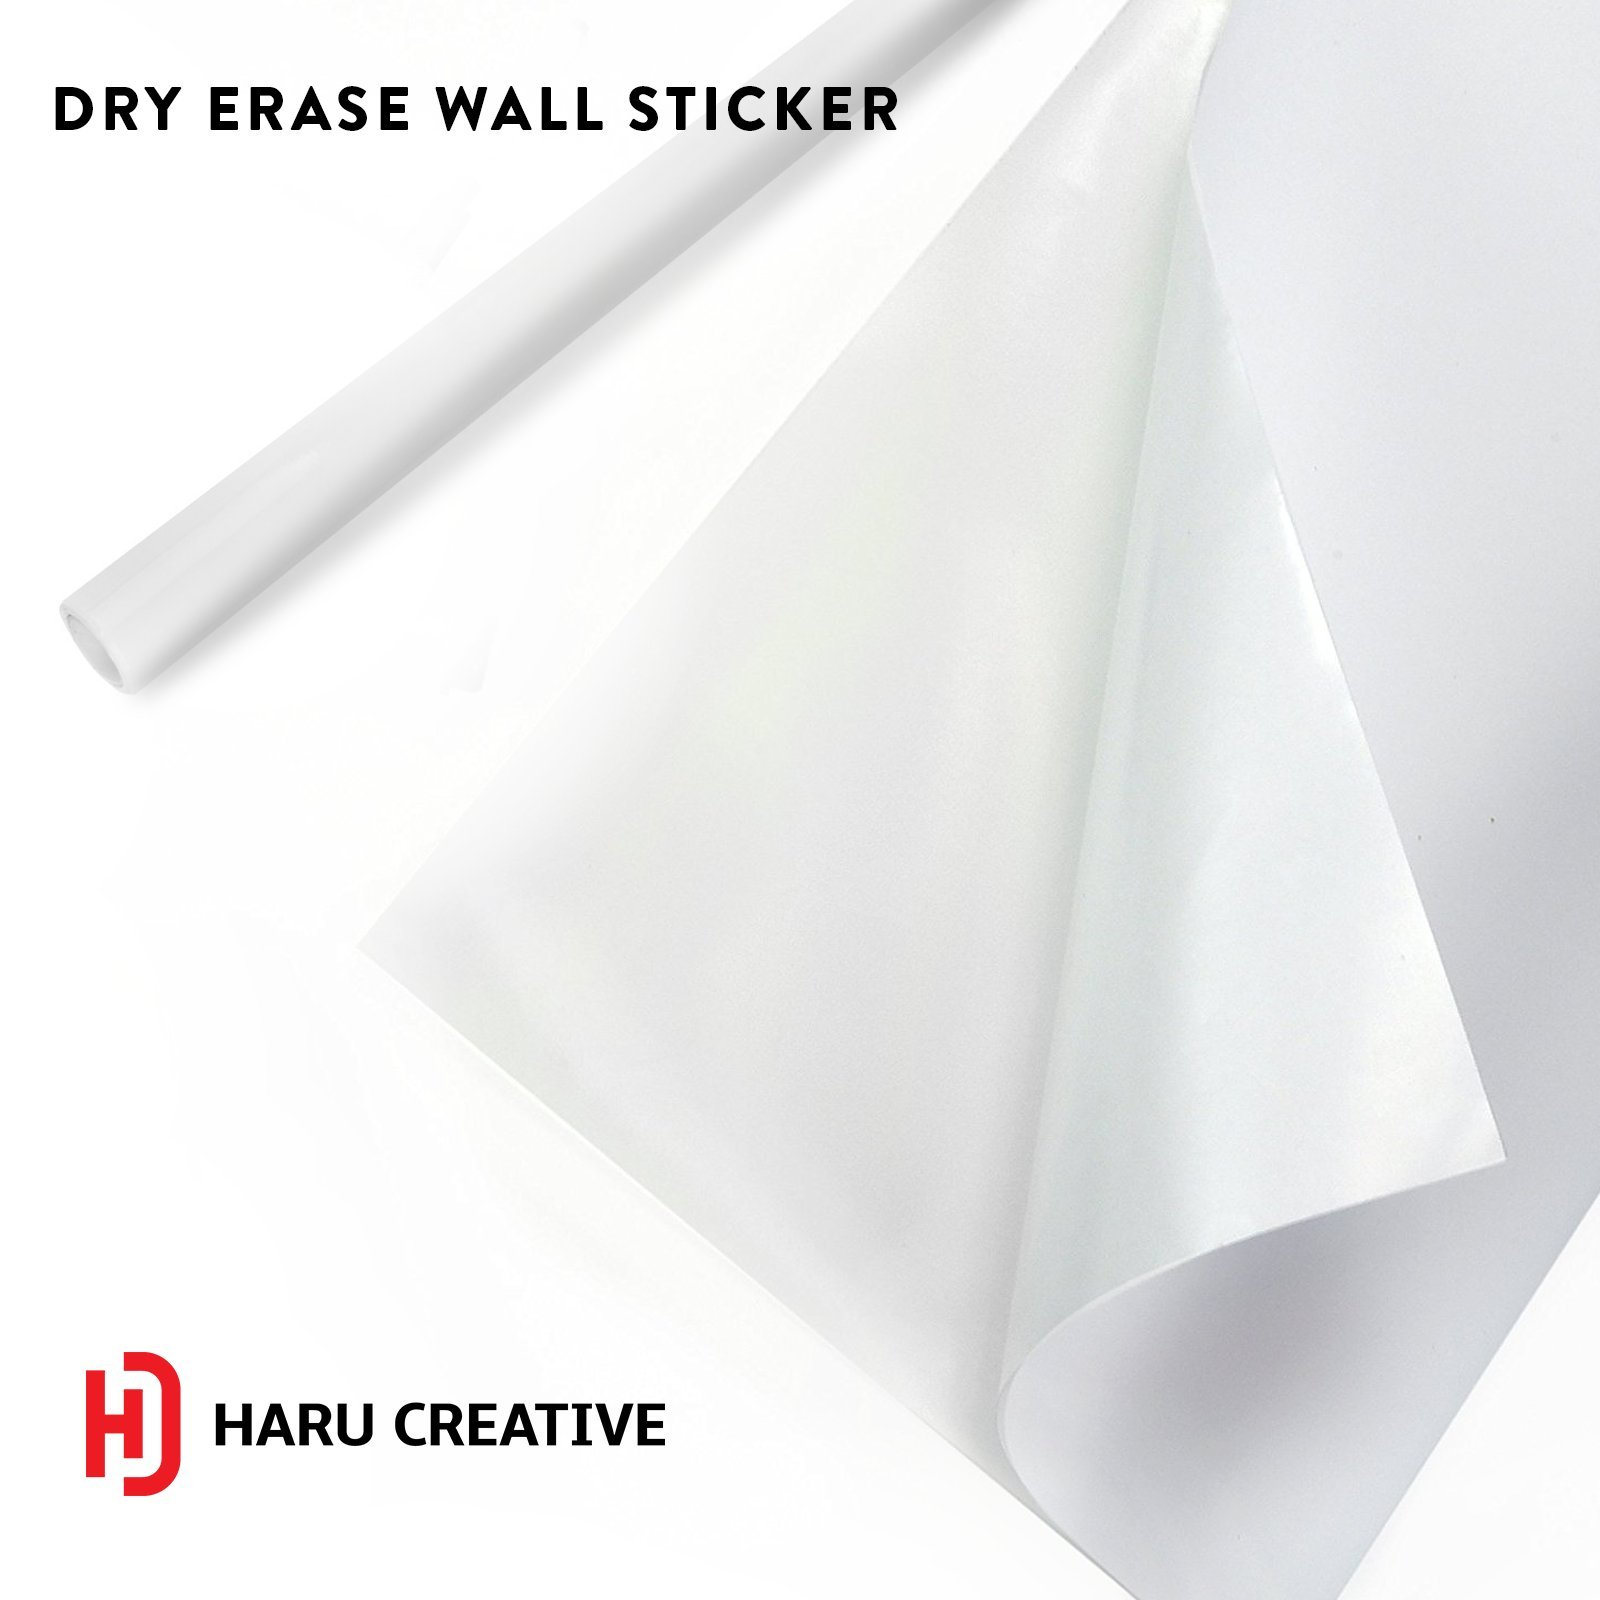 Haru Creative Dry Erase Board Whiteboard Wall Mural Sticker Decal Adhesive Roll Decor for Home, Office, School, Nursery - 4FT x 6FT Sheet - Color White